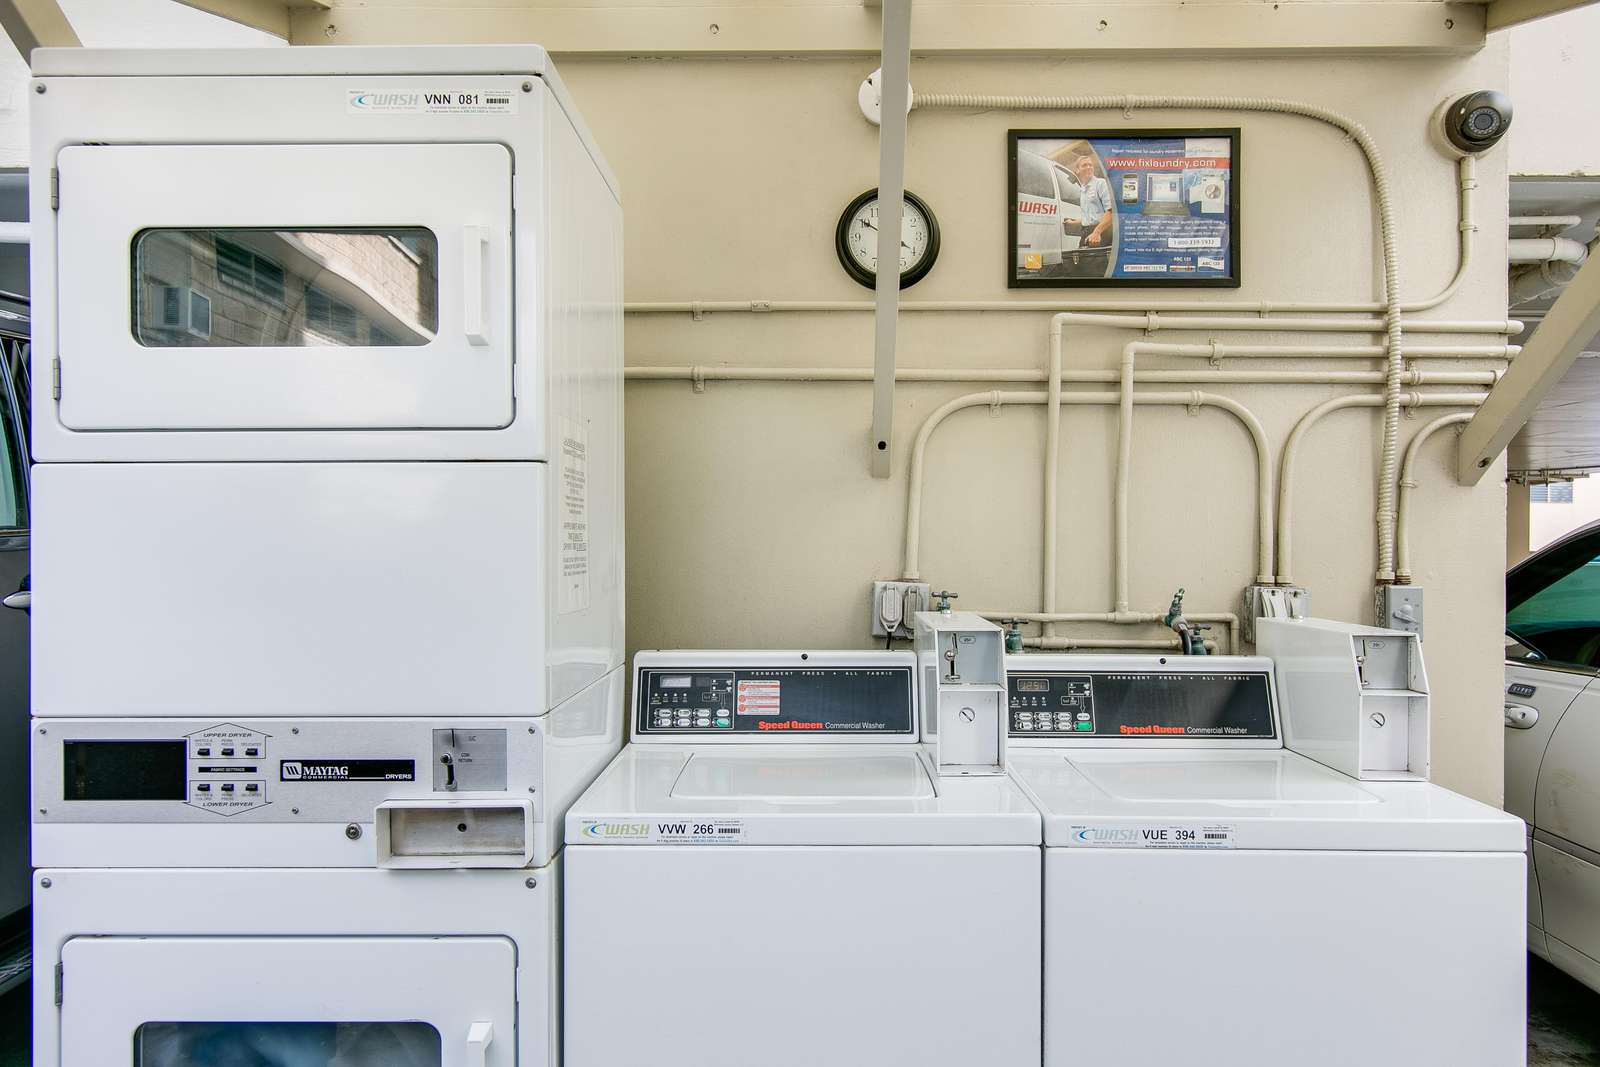 Onsite coin-operated laundry facilities